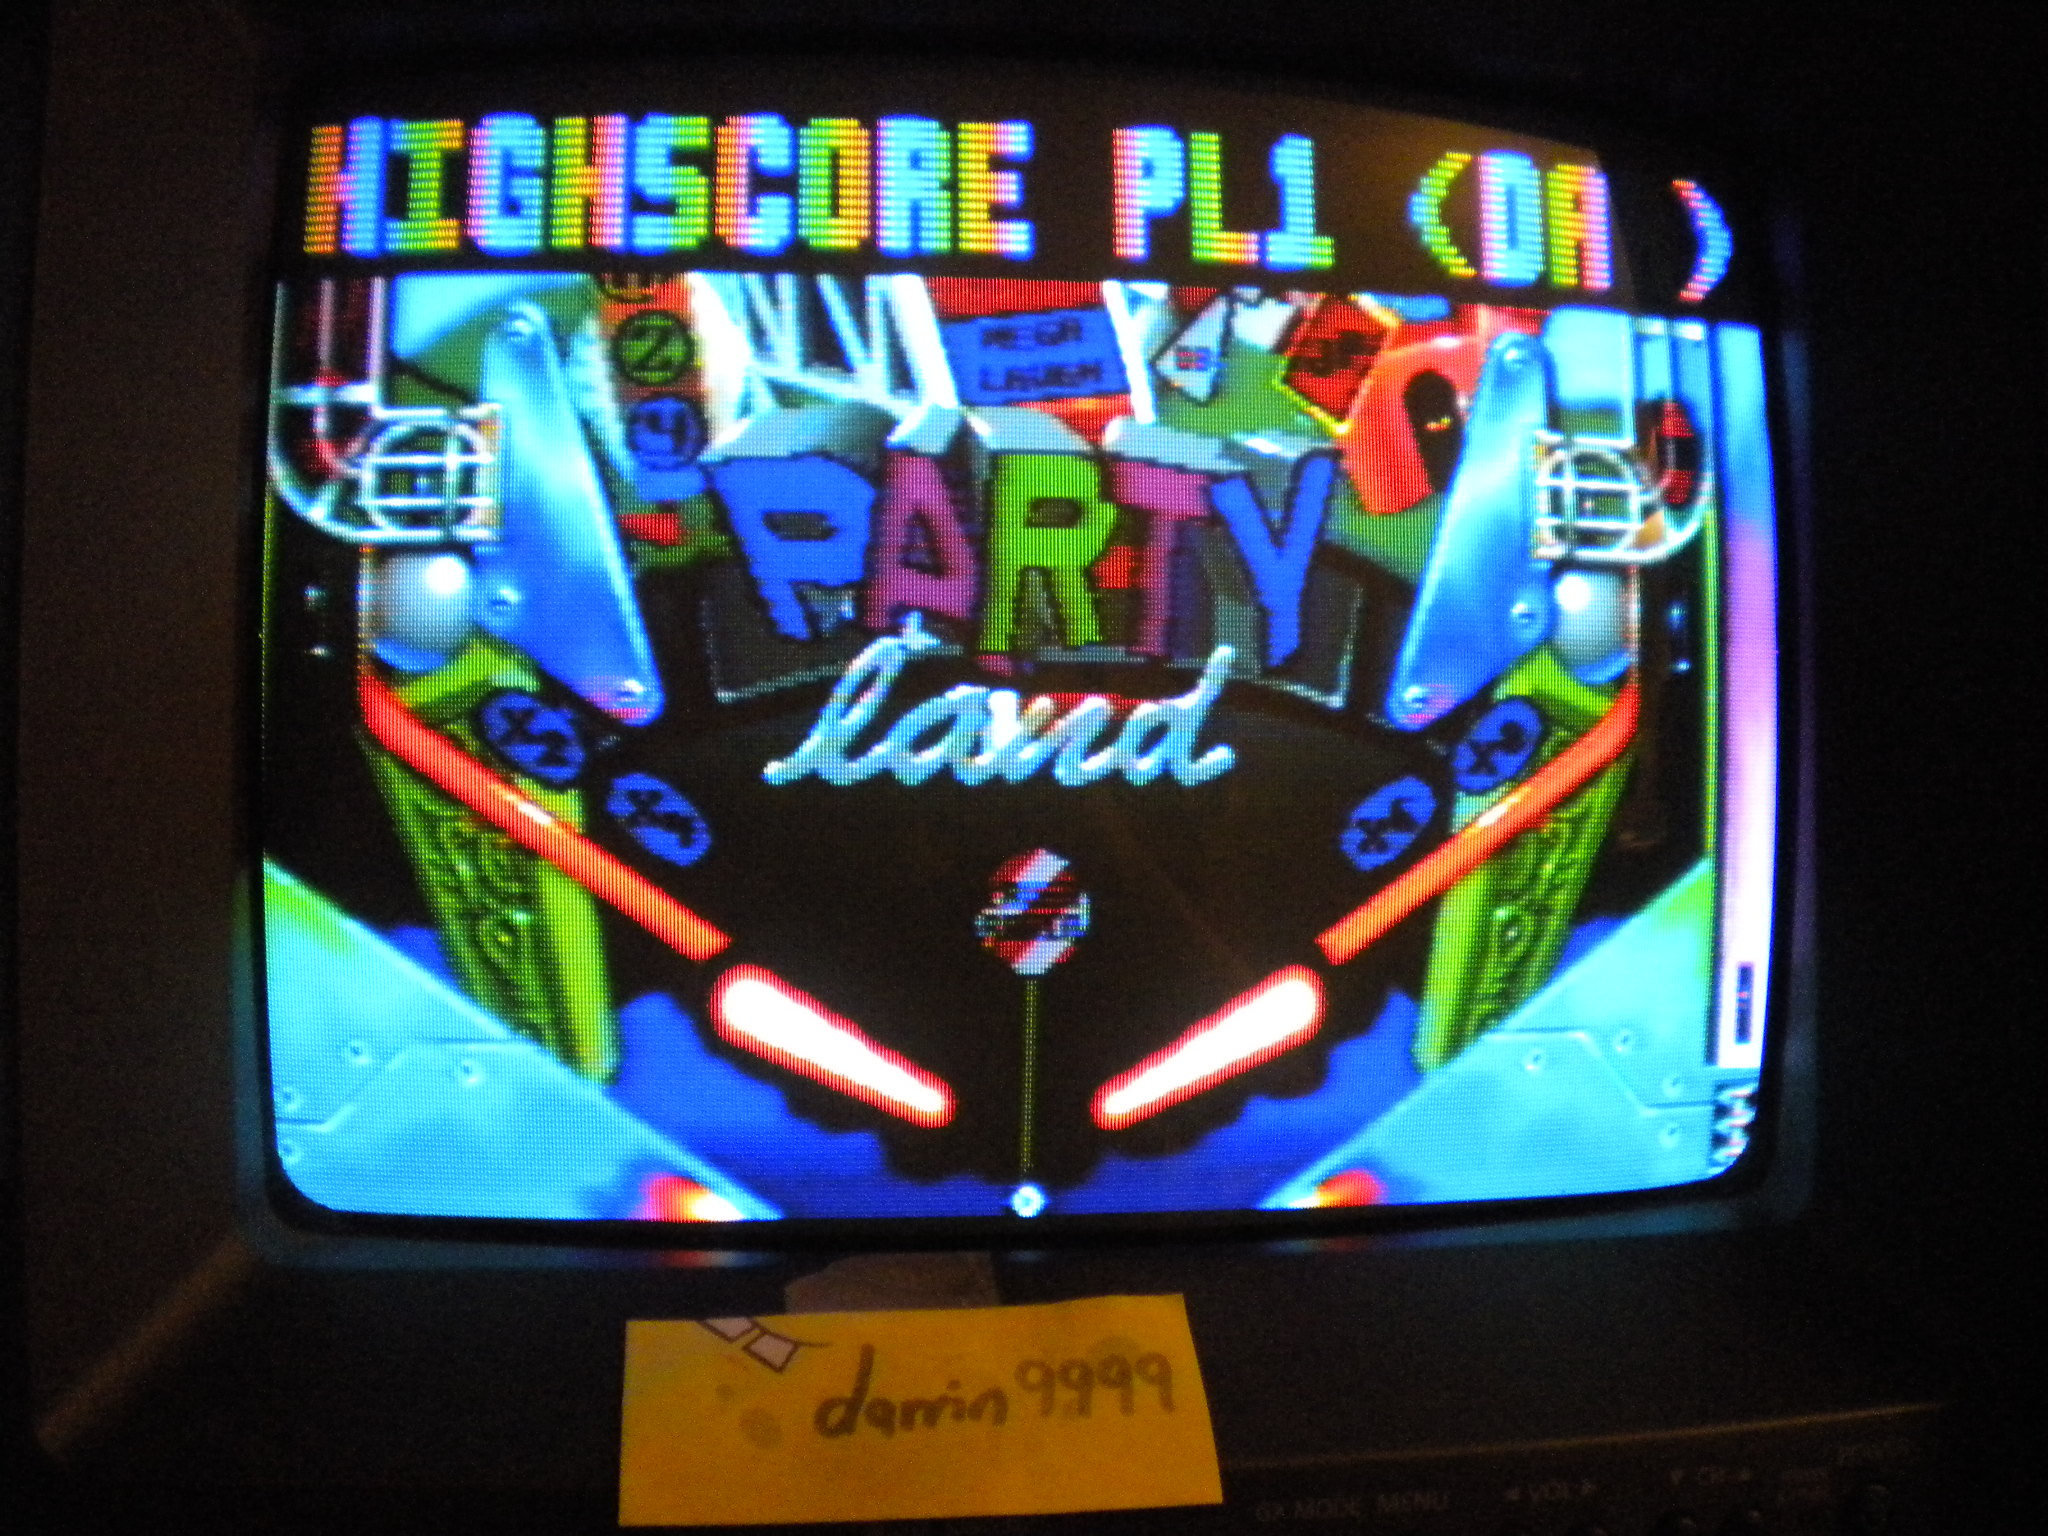 darrin9999: Pinball Fantasies: Party Land (Atari Jaguar) 11,019,900 points on 2016-11-26 17:20:47